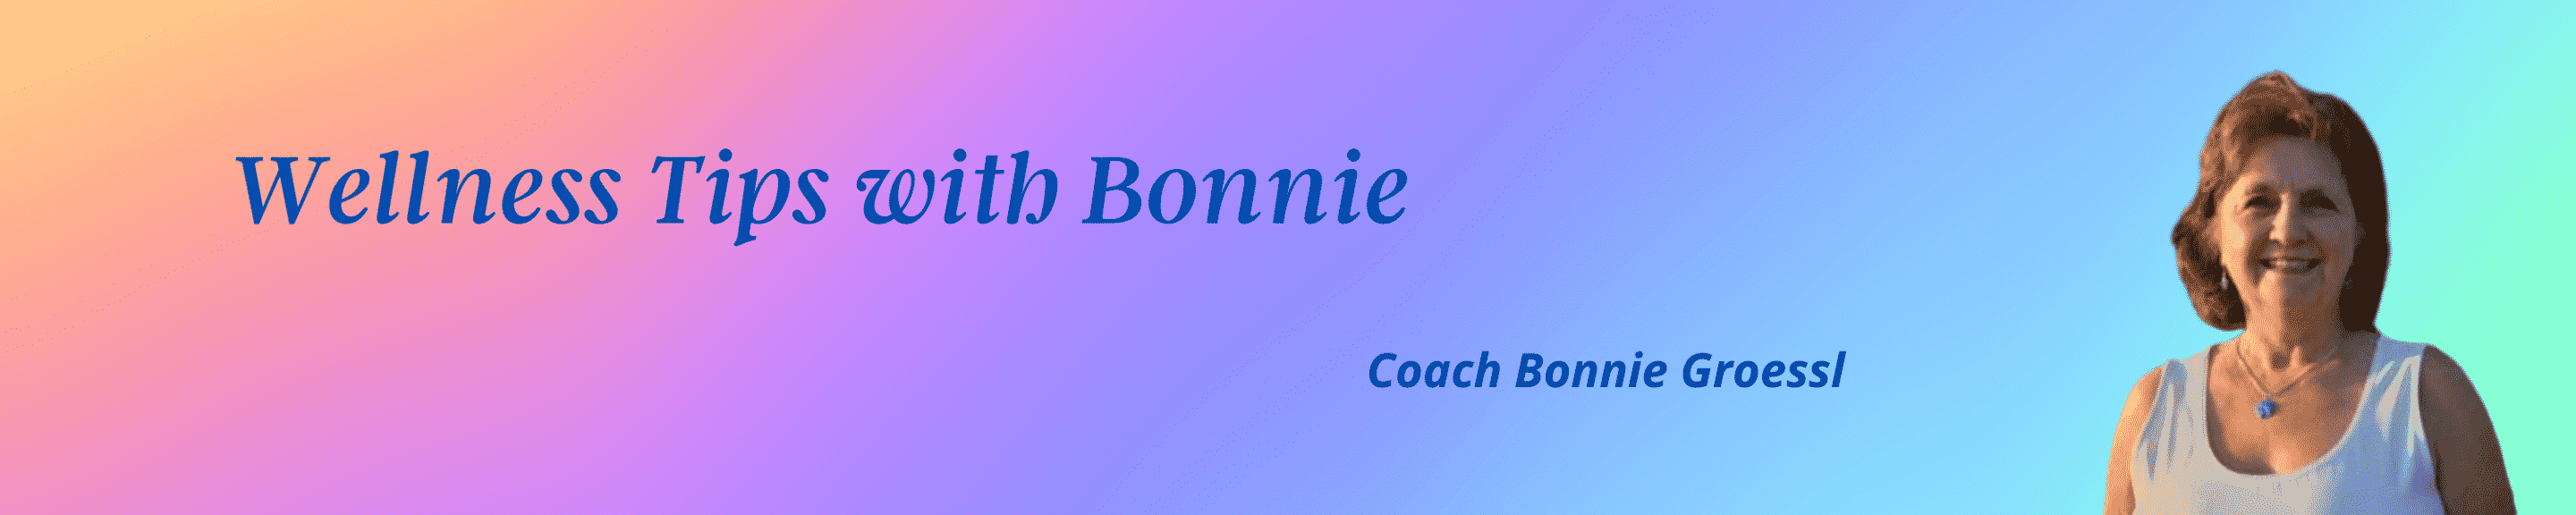 wellness tips with Bonnie